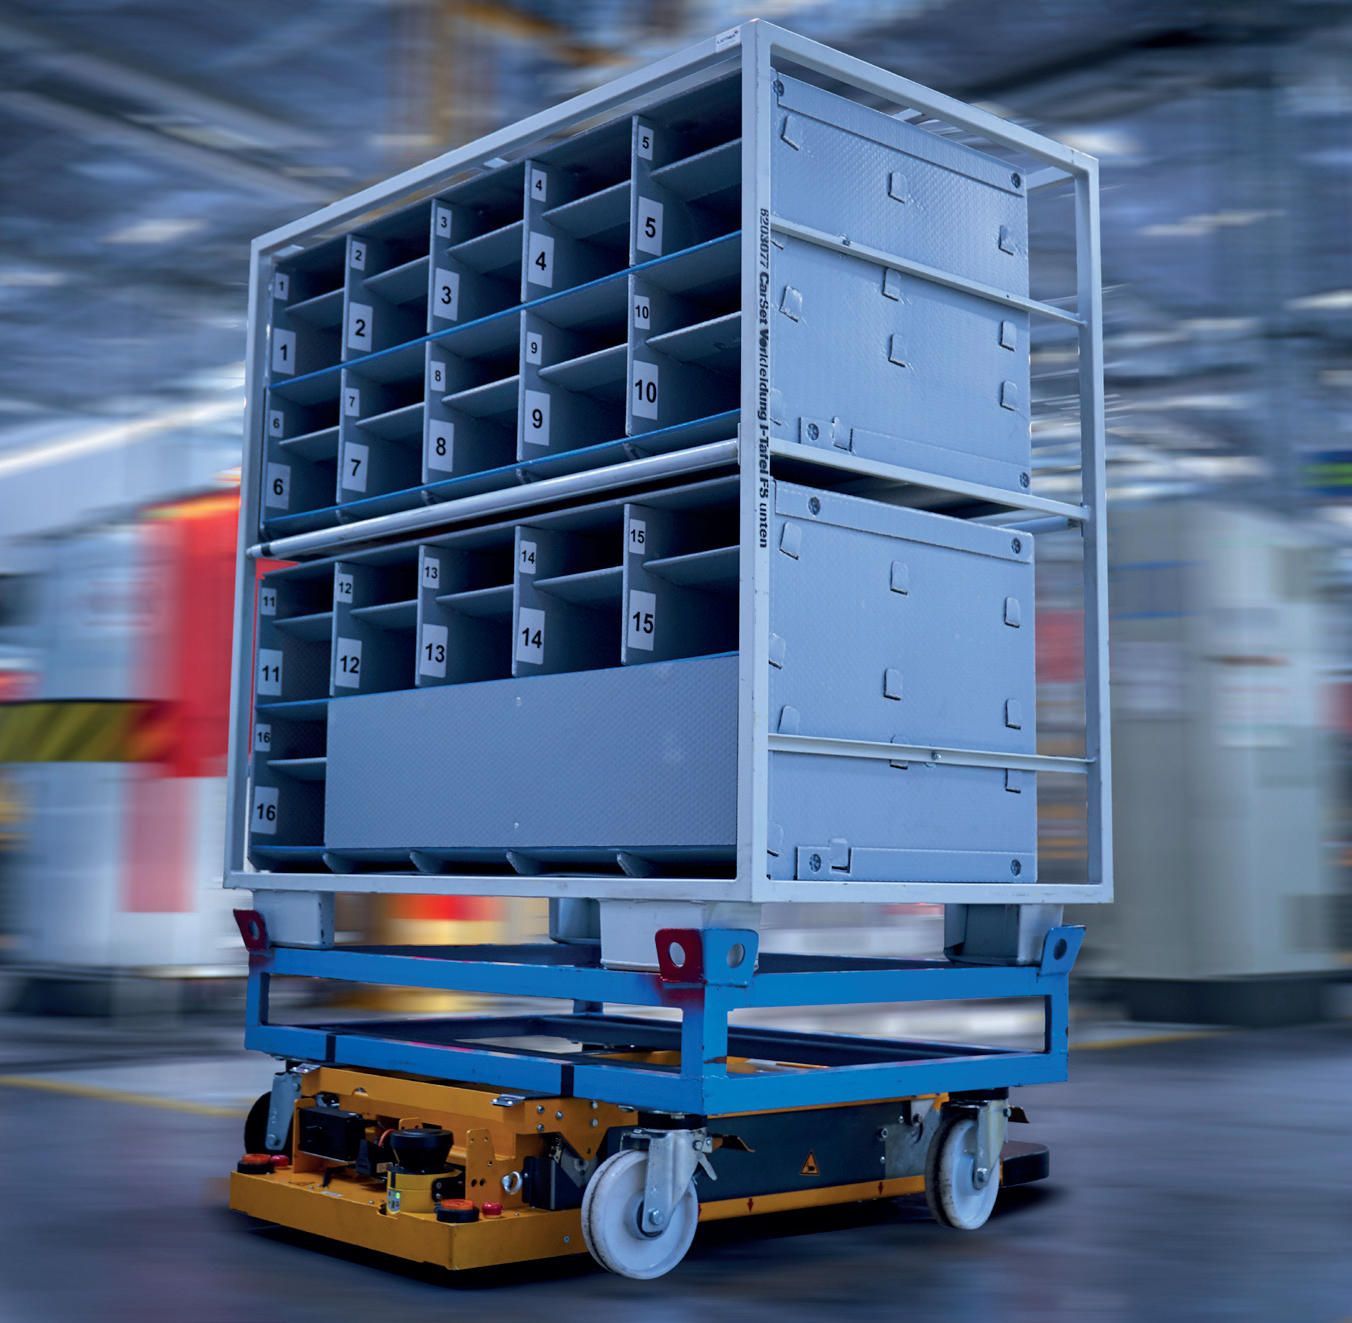 BMW Supply Chain - Smart Transport Robots (STRs) use their hydraulic platform to lift parts trollies off the floor and move them to where they need to be - image courtesy of BMW Group.